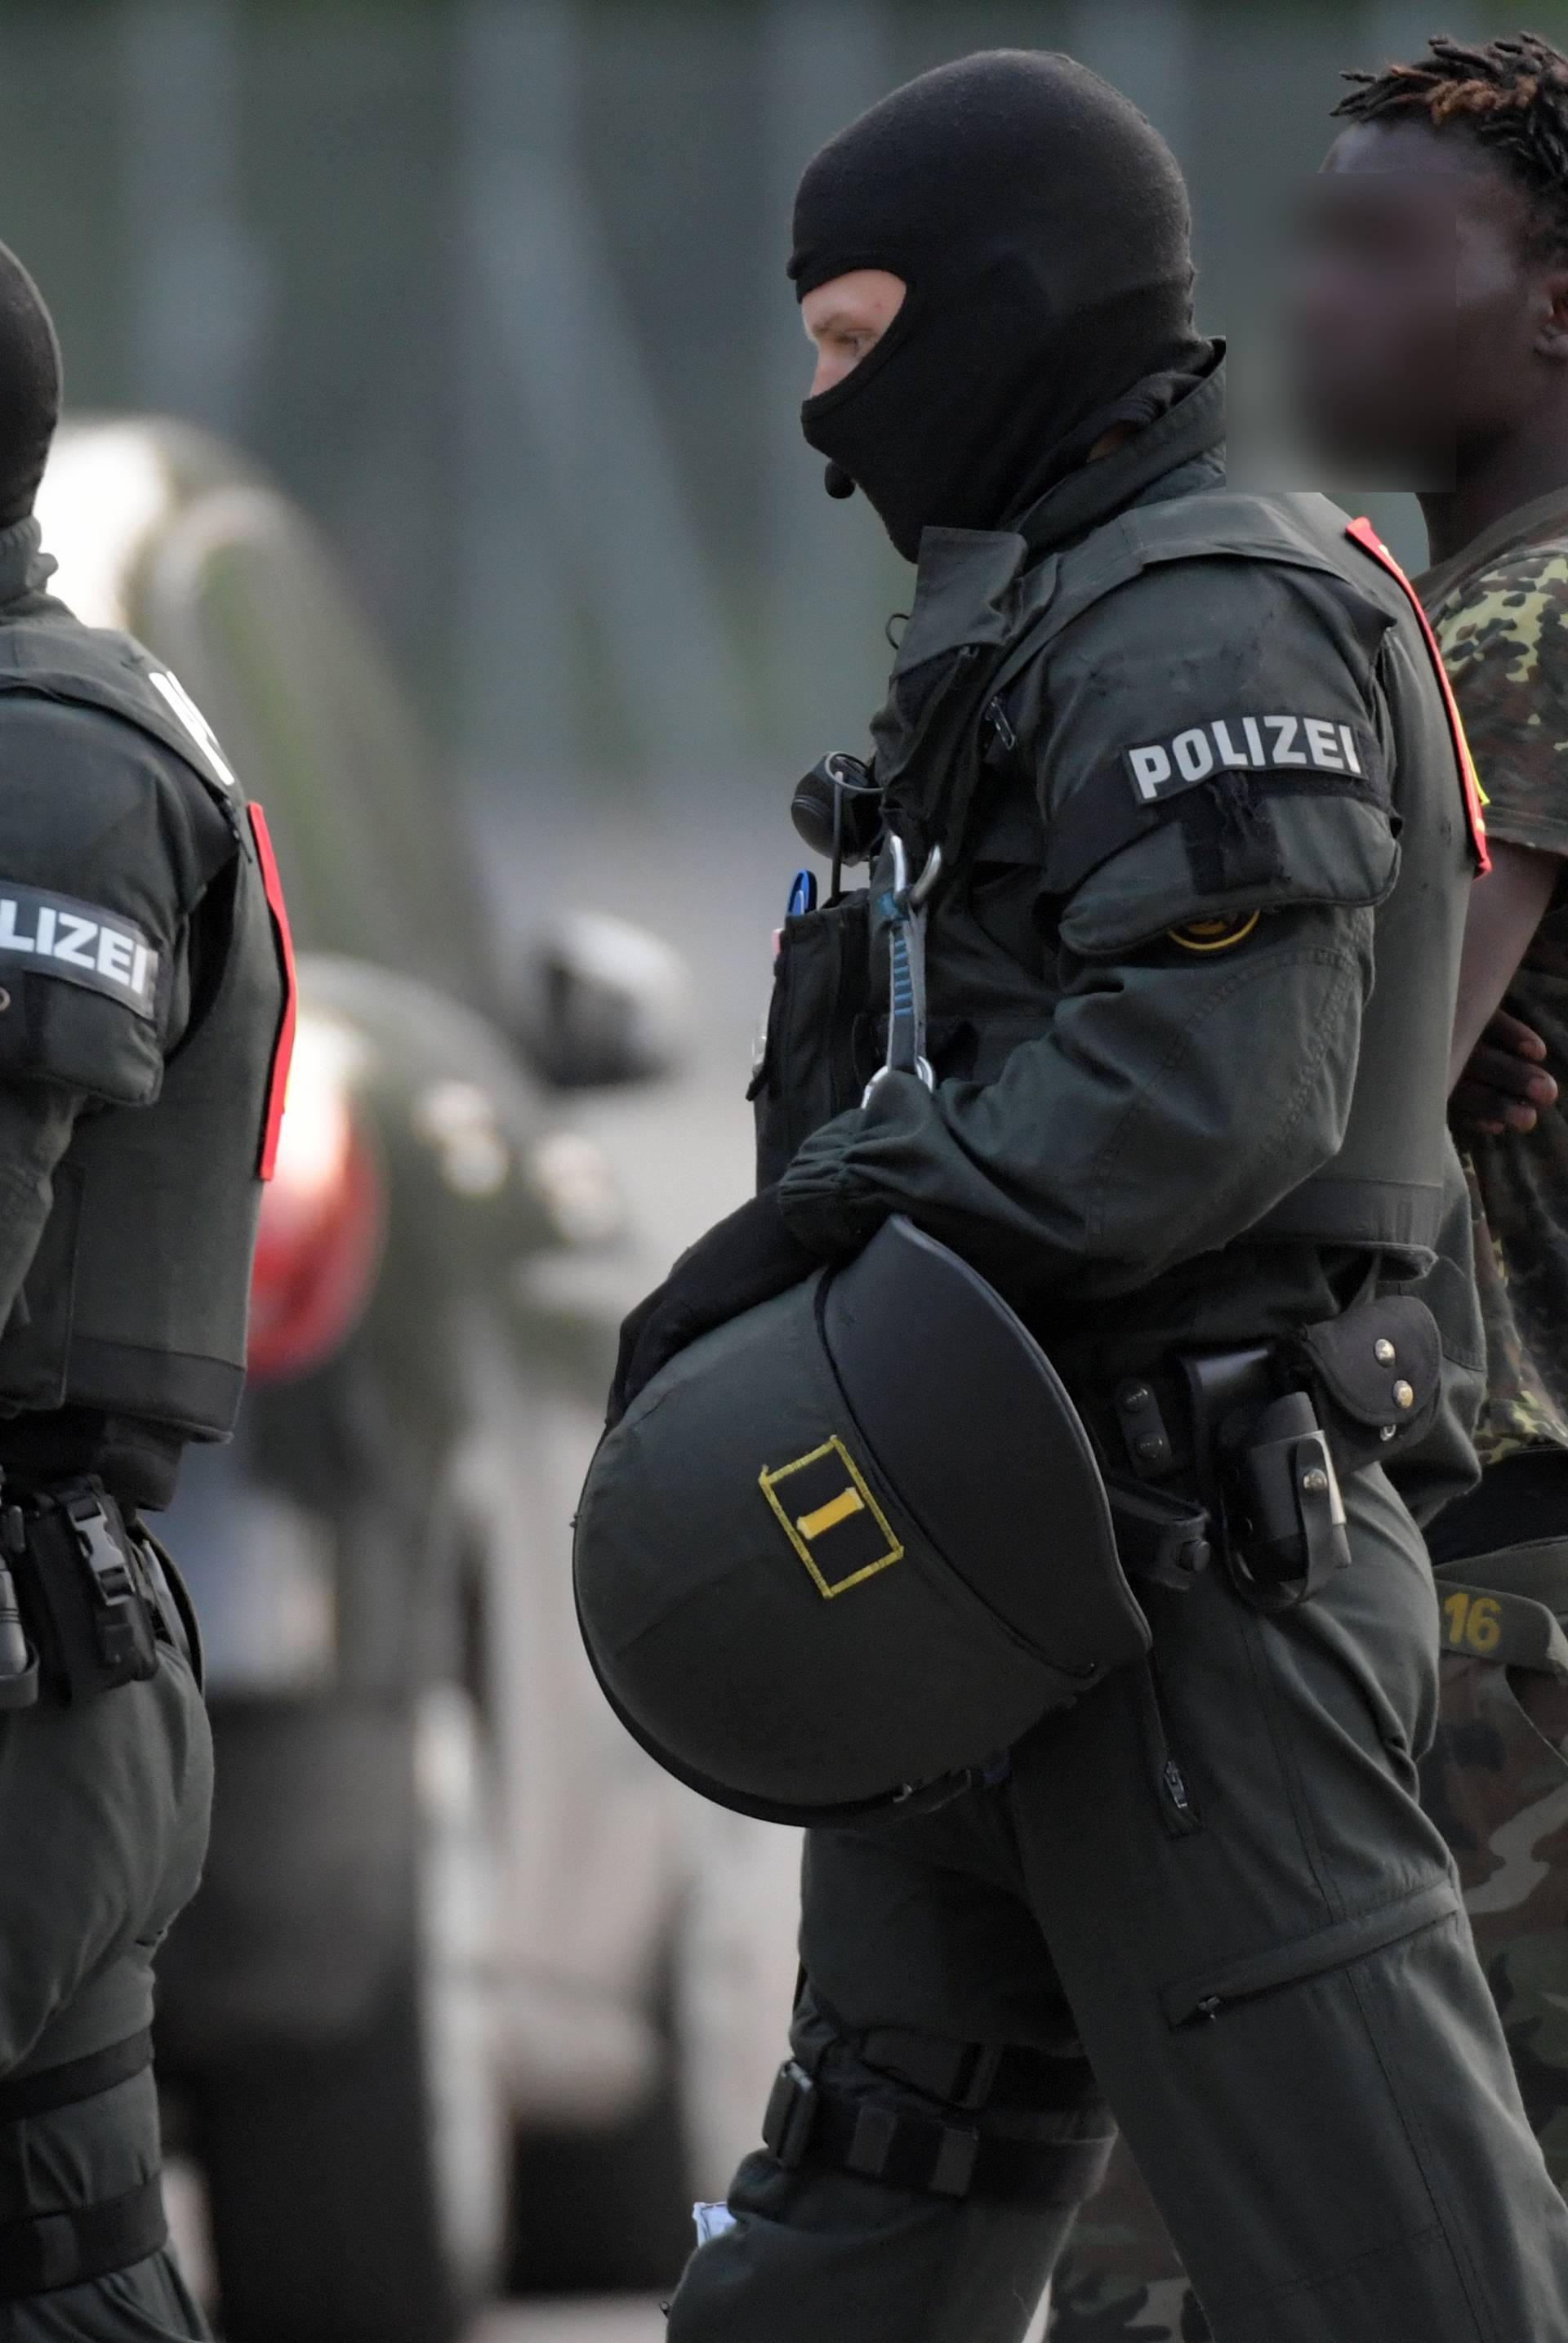 Police operation at refugee centre in Germany